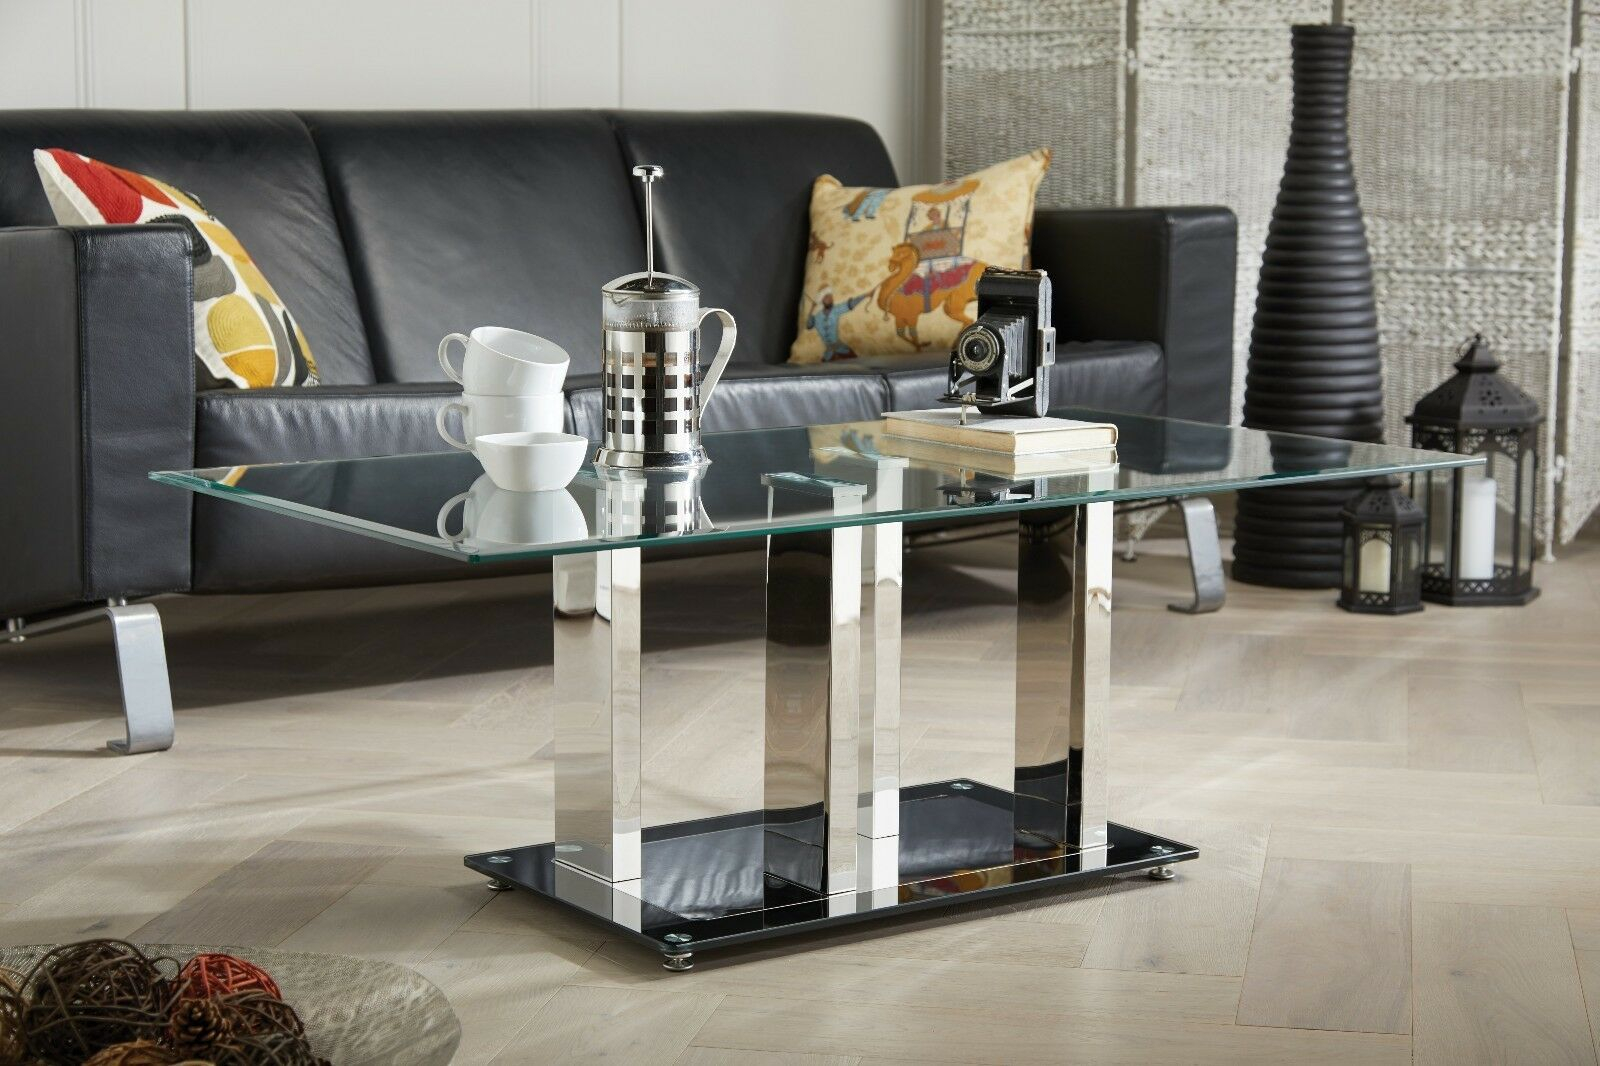 Sophia Modern Blacksilver Stainless Steel And Glass Stylish Coffee pertaining to dimensions 1600 X 1066